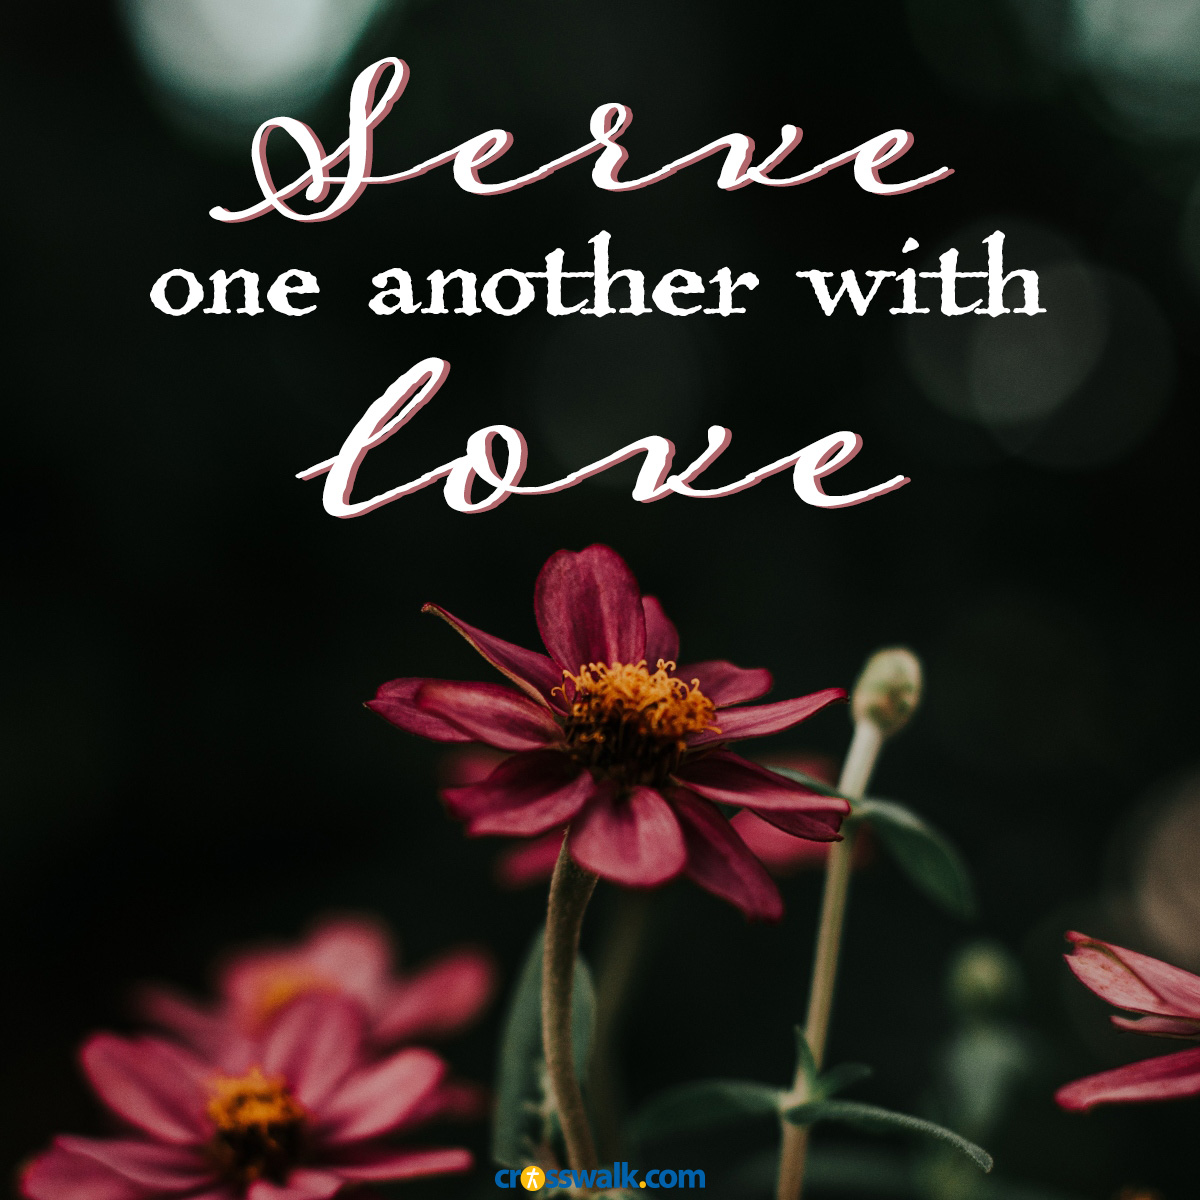 serve one another with love square inspirational image